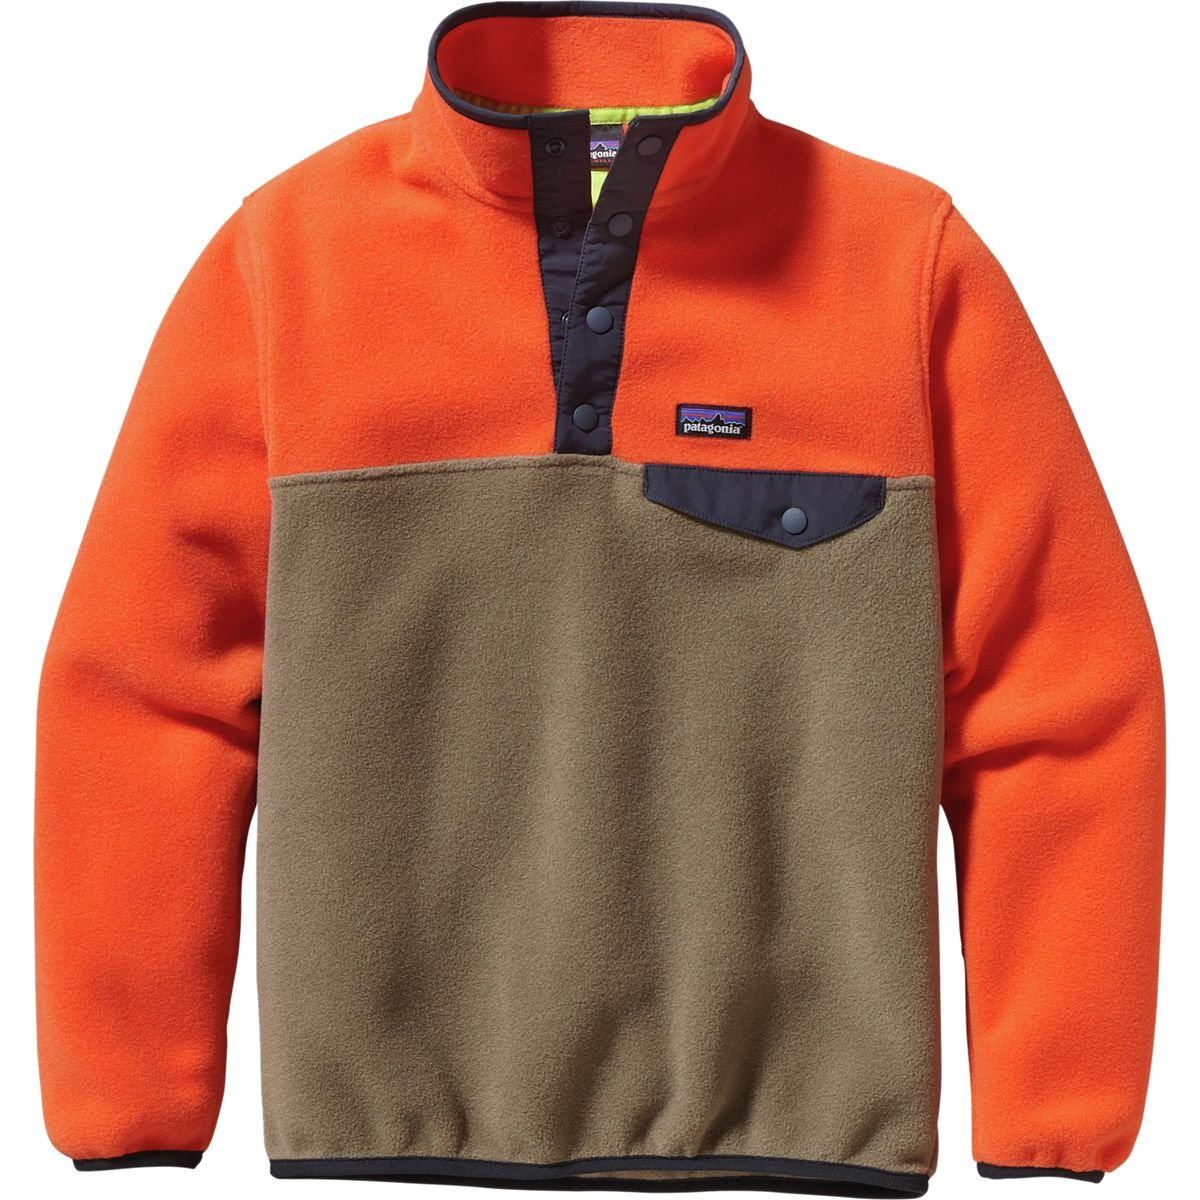 Patagonia Lightweight Synchilla Snap-T Fleece Pullover - Boys' Ash Tan, XL by Patagonia